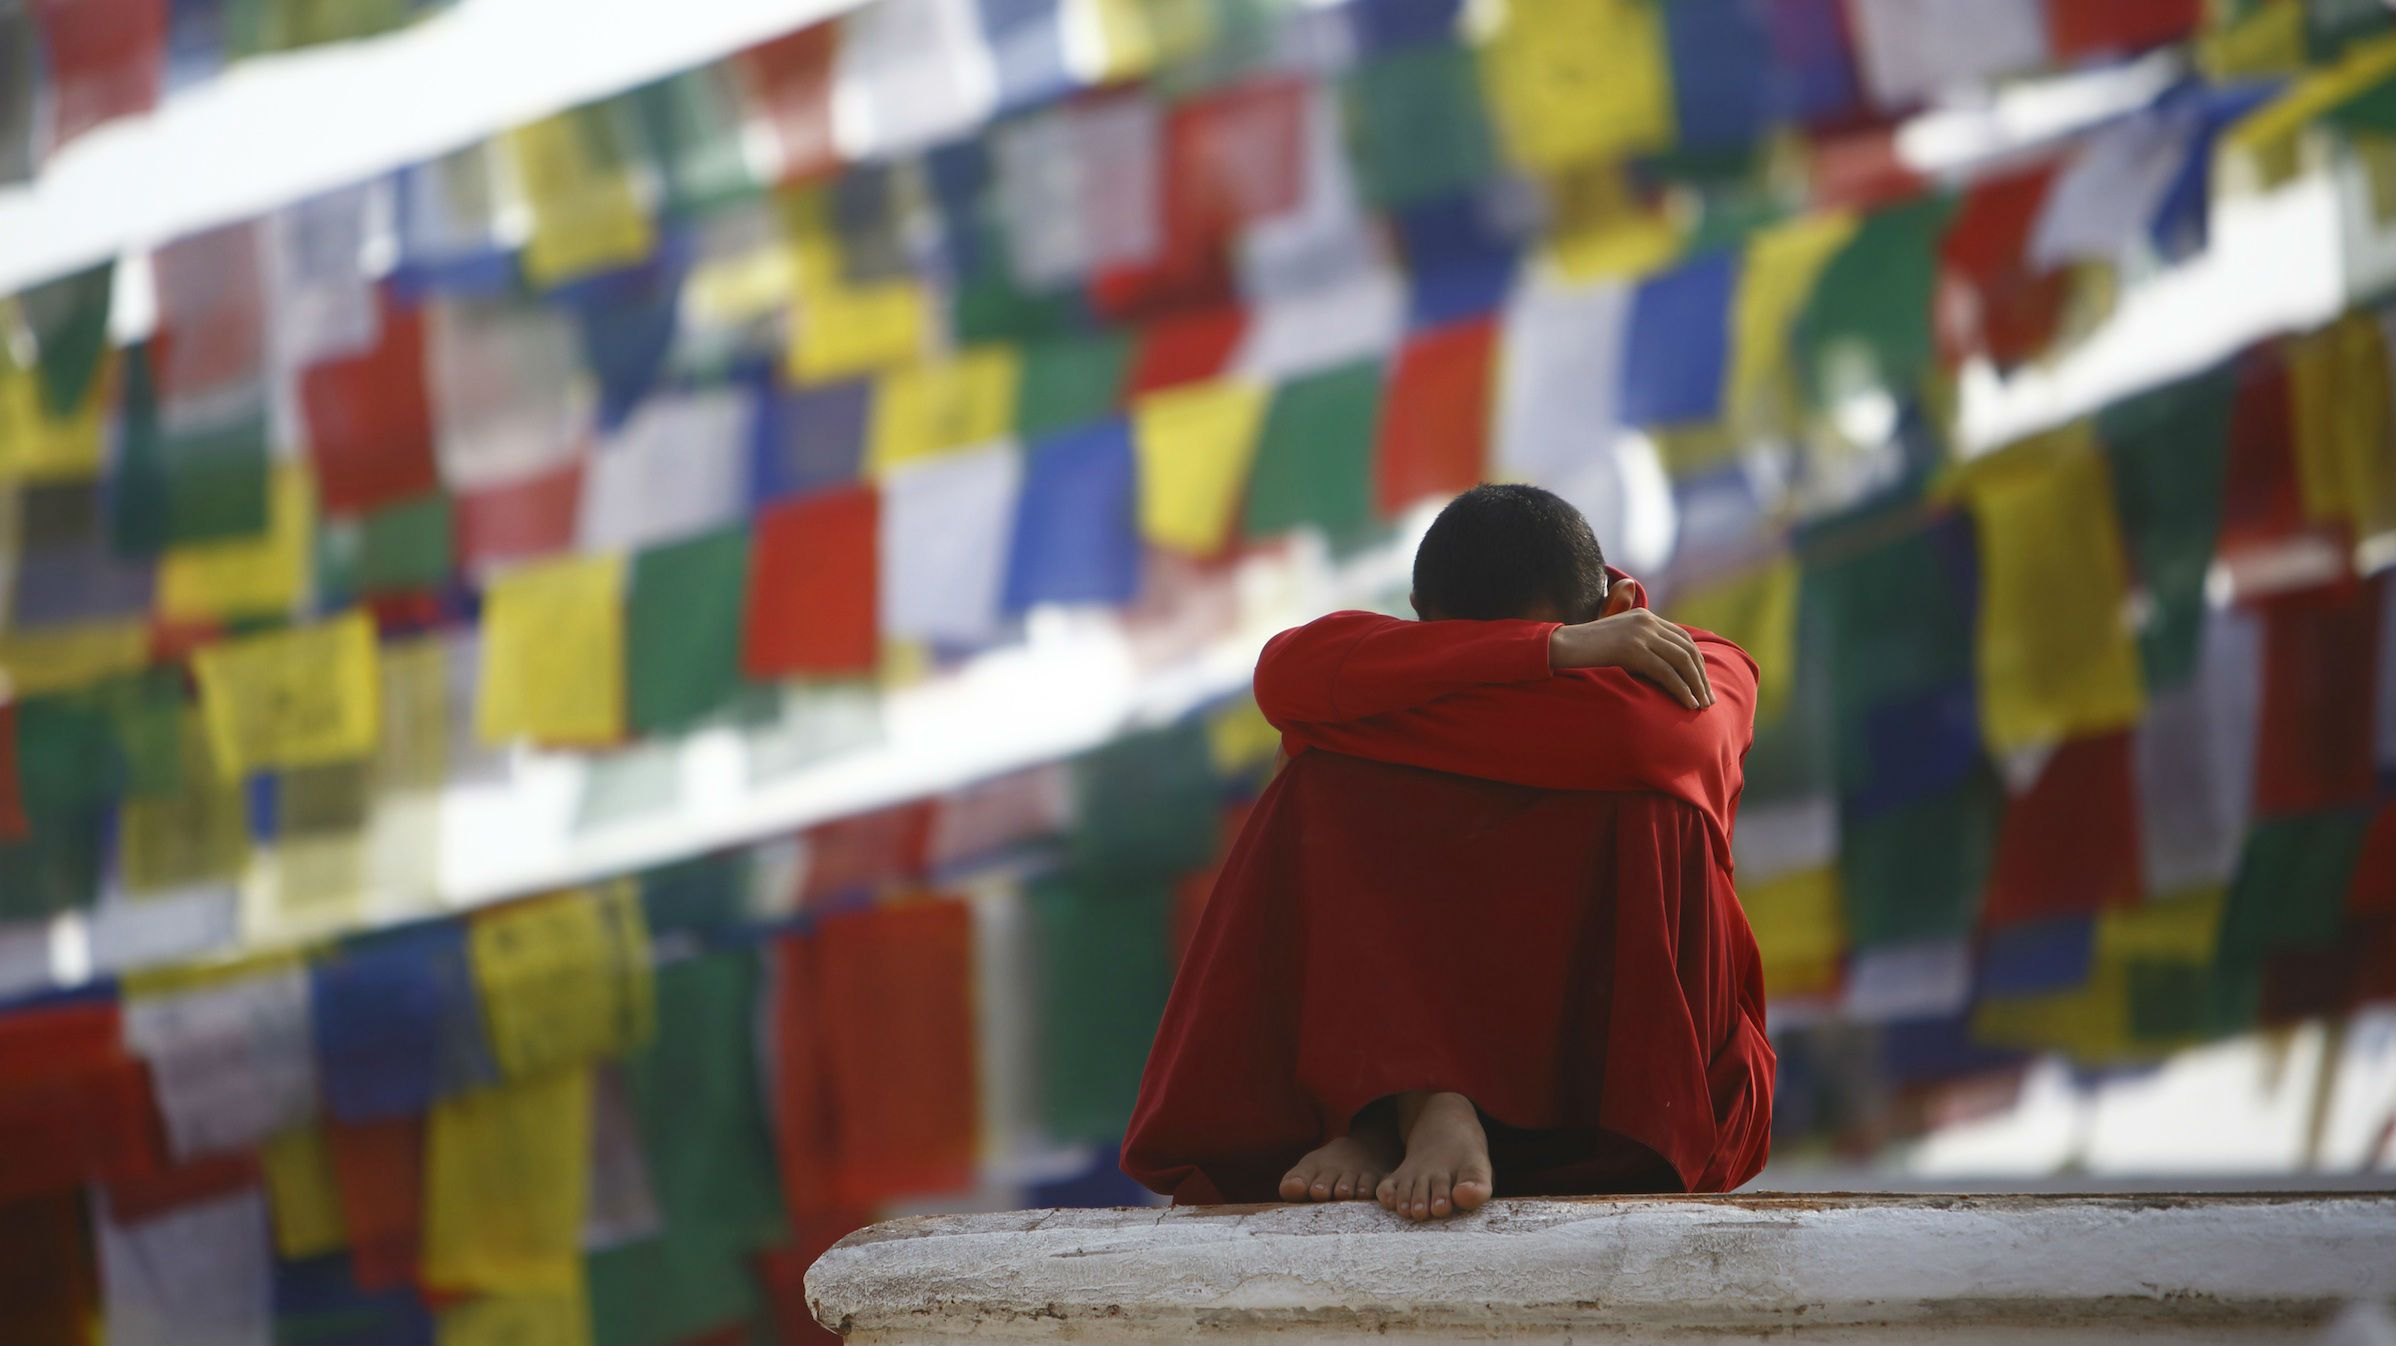 Not everyone thinks life is great in Tibet.